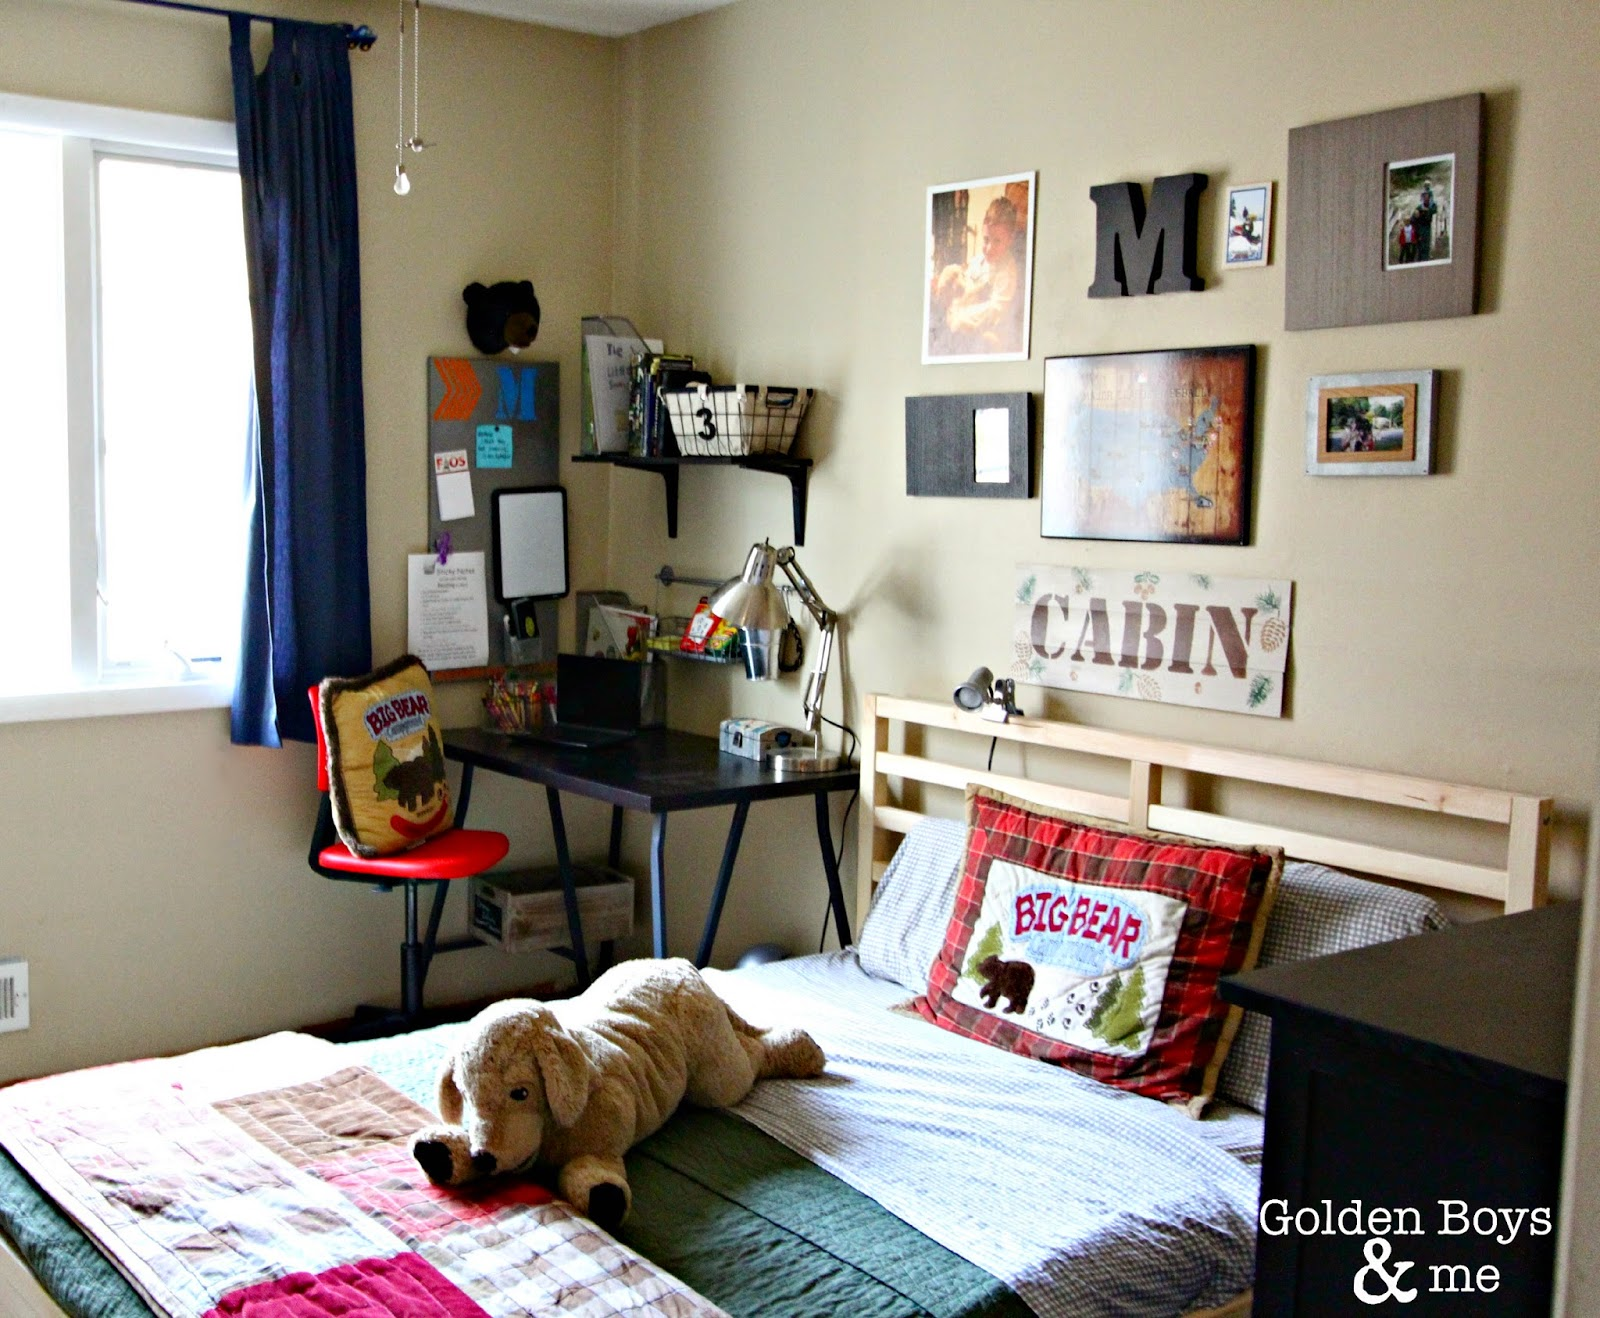 Golden boys and me october 2014 for 14 year old room ideas